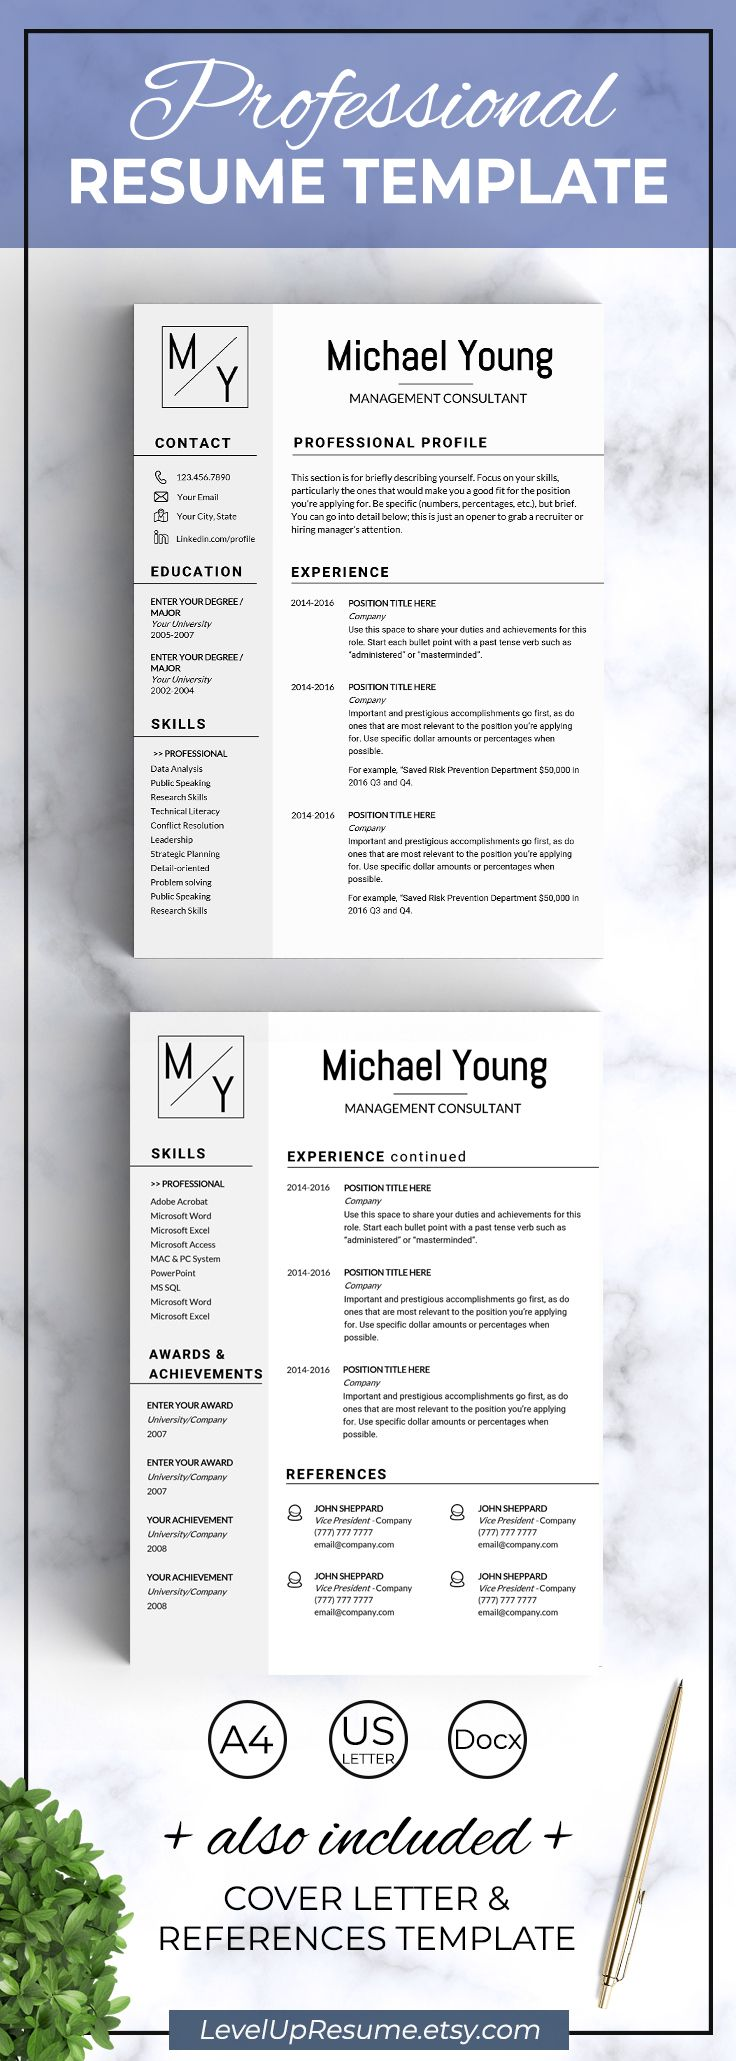 How To Do A Cover Resume Modern Resume Template For Ms Wordprofessional Resume Design .